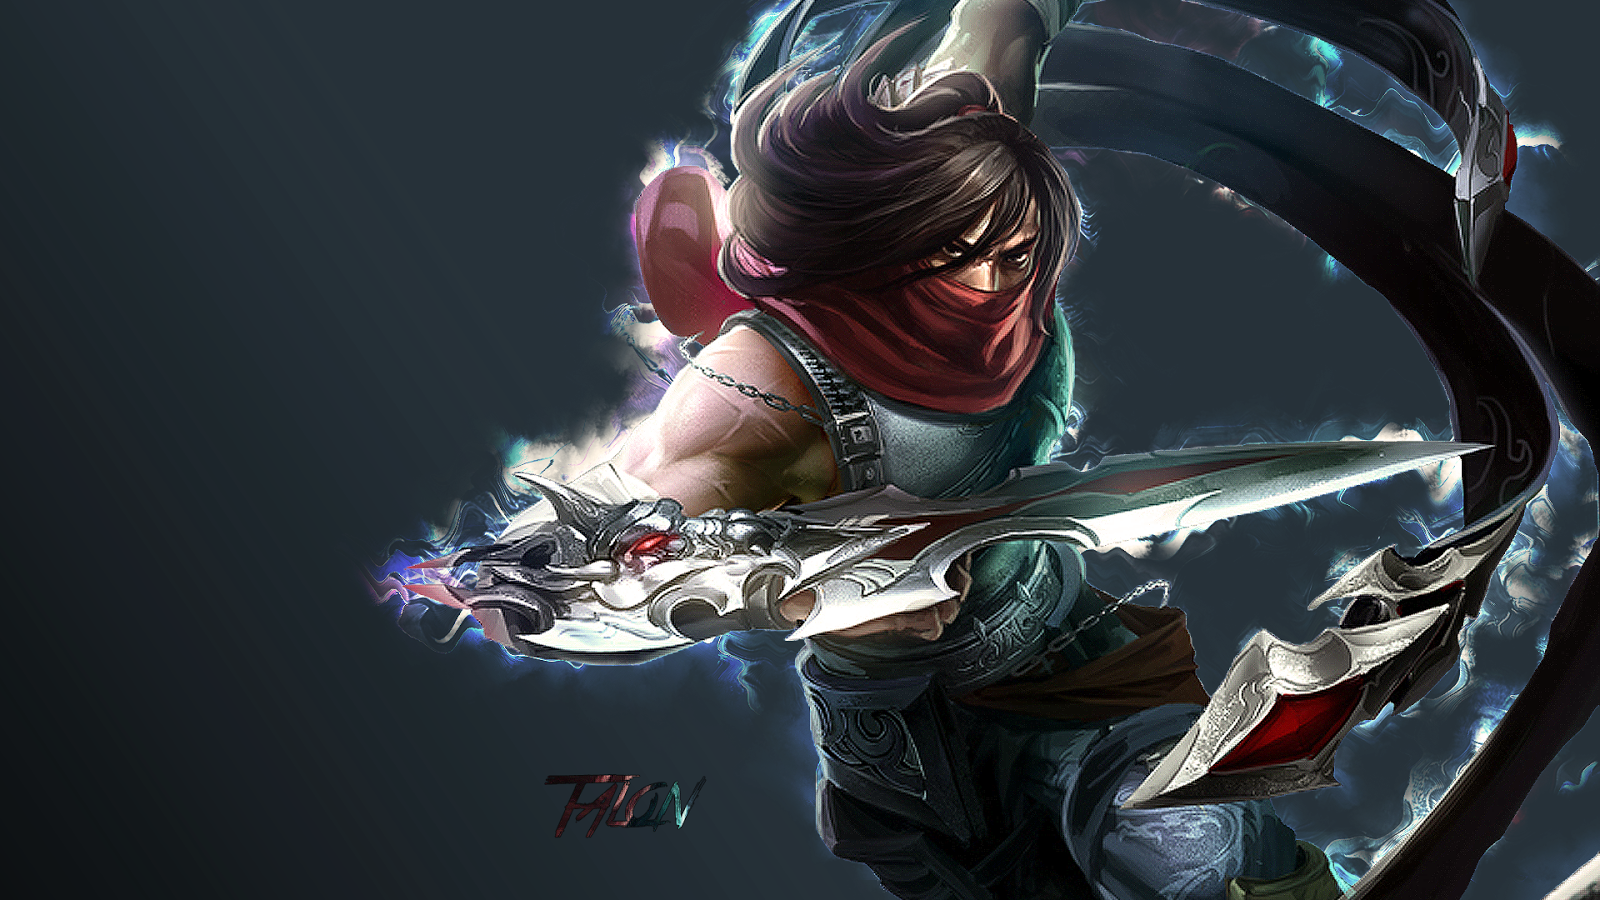 High Resolution Talon Wallpapers #39684041 Pics